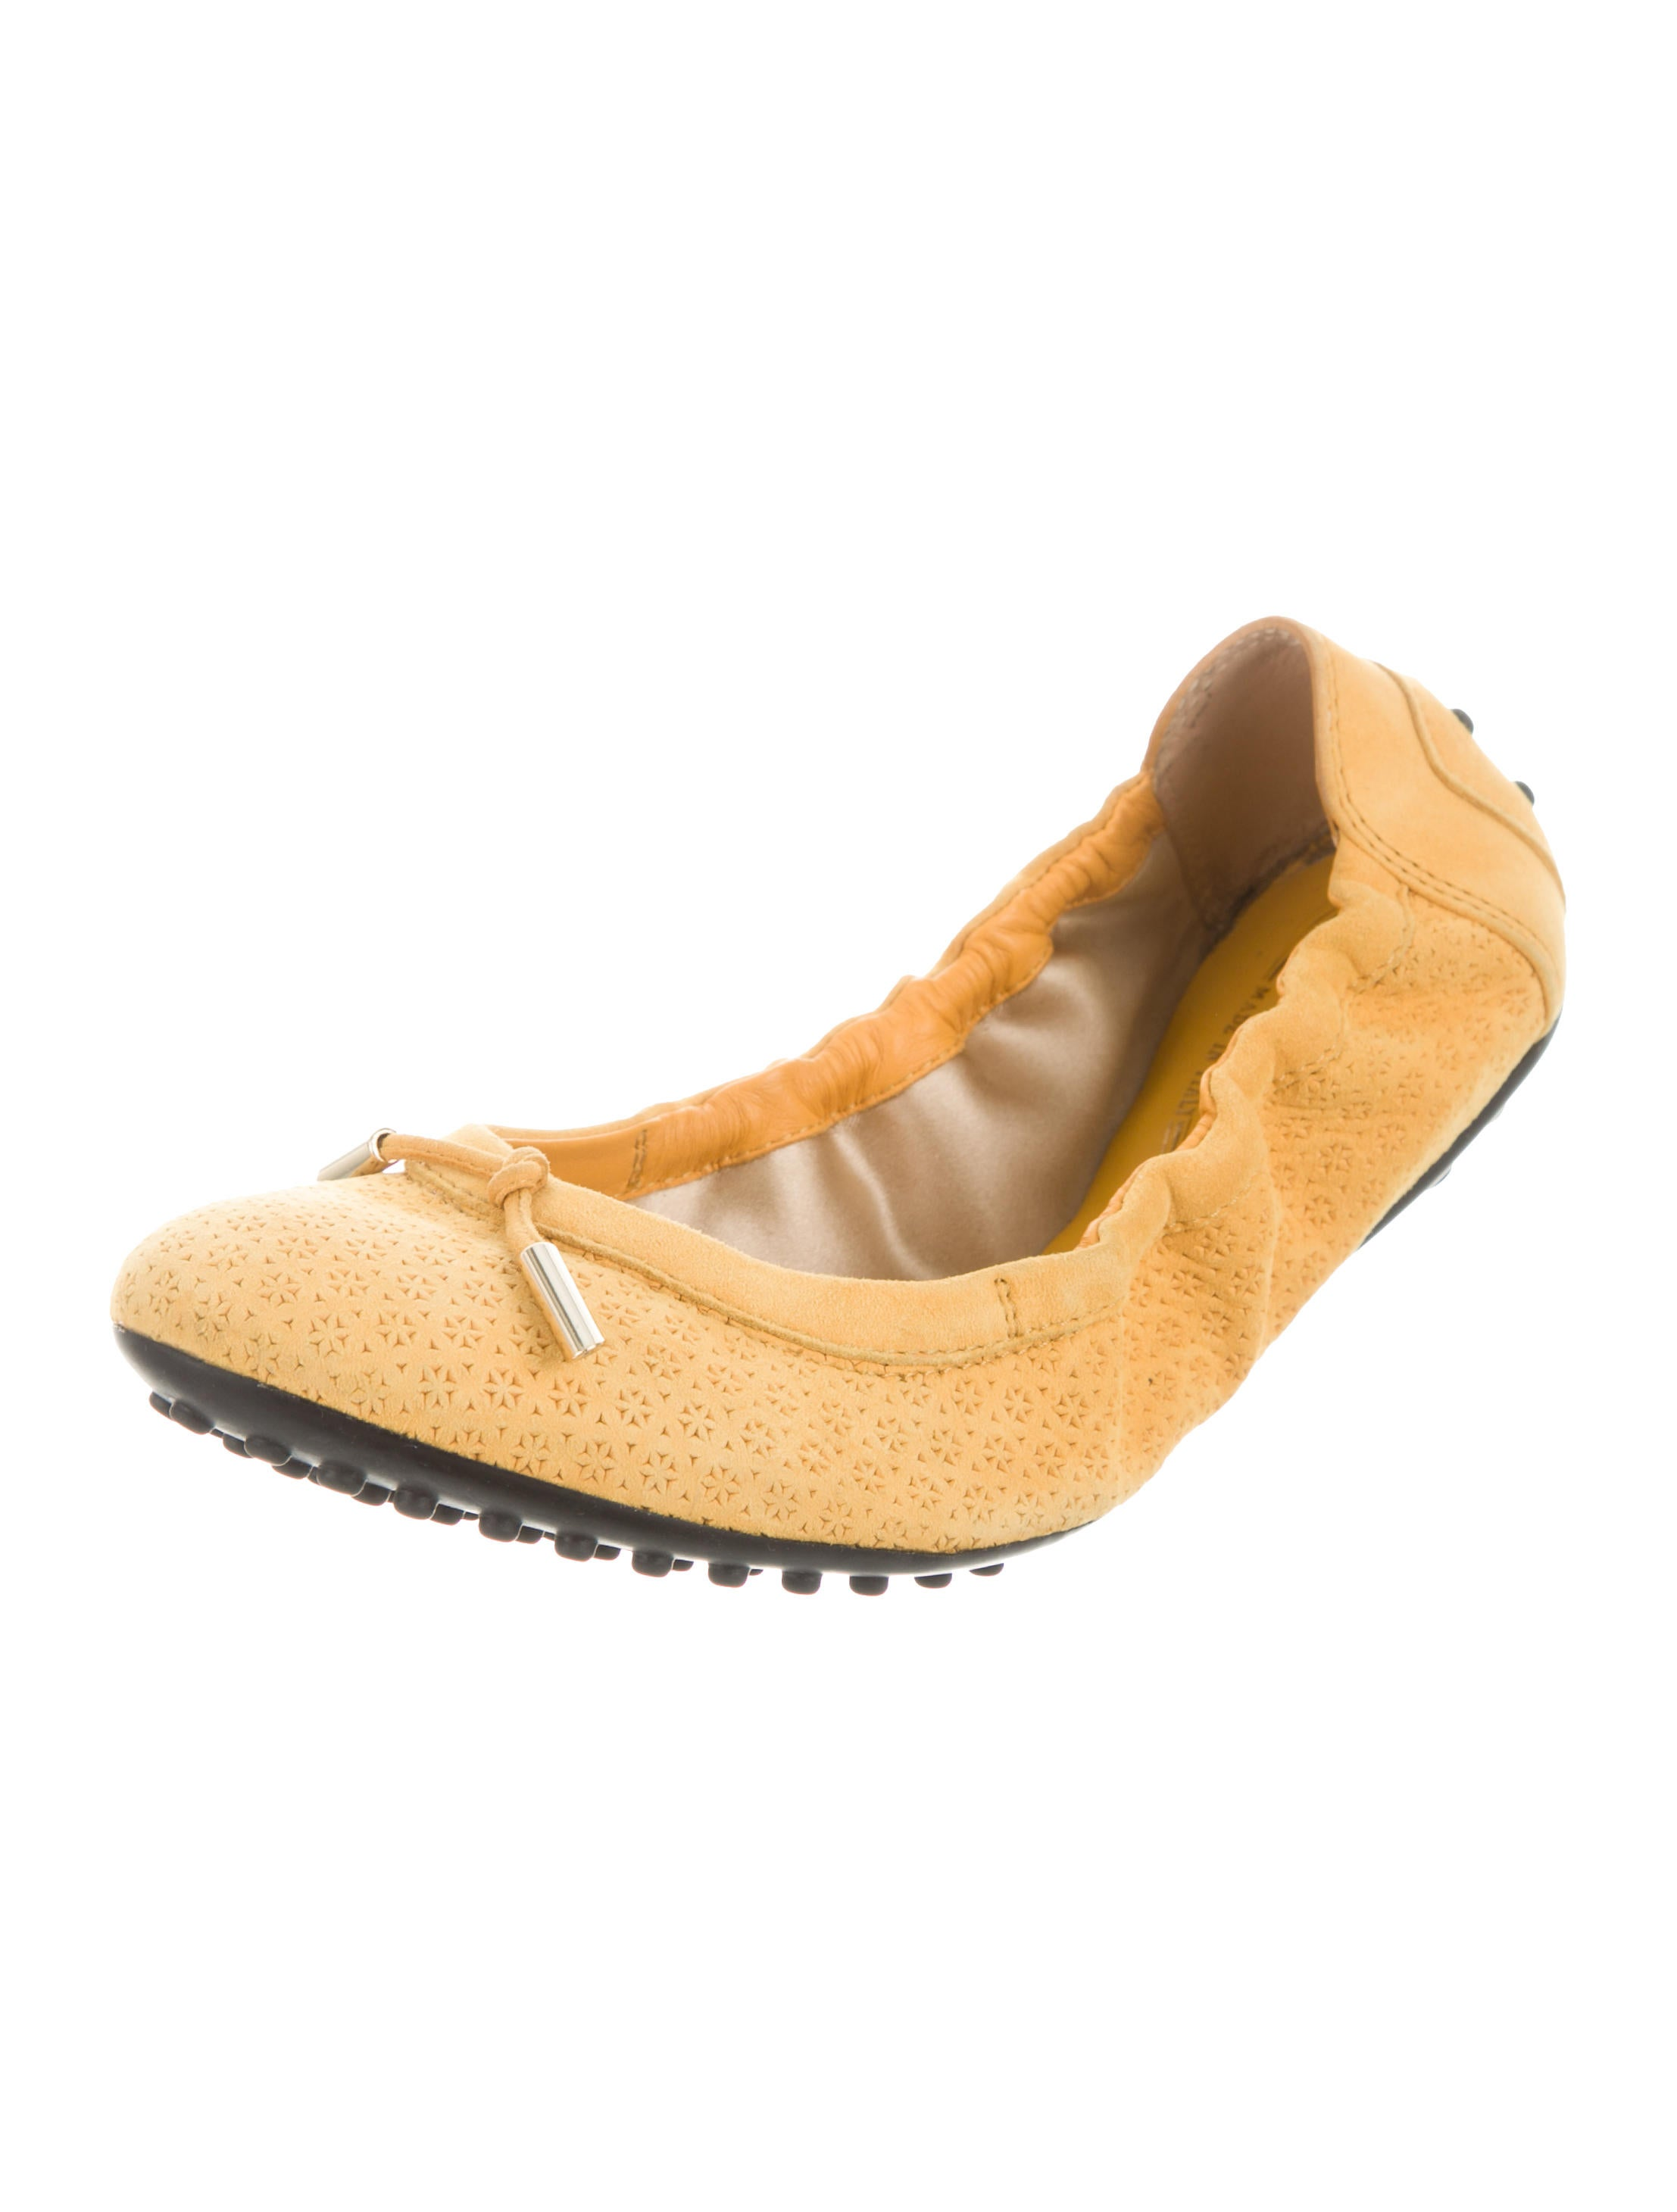 Shop the Women's Anya Suede Ballet Flats at sofltappreciate.tk Factory and see the entire selection of Women's Footwear. Free Shipping Available.